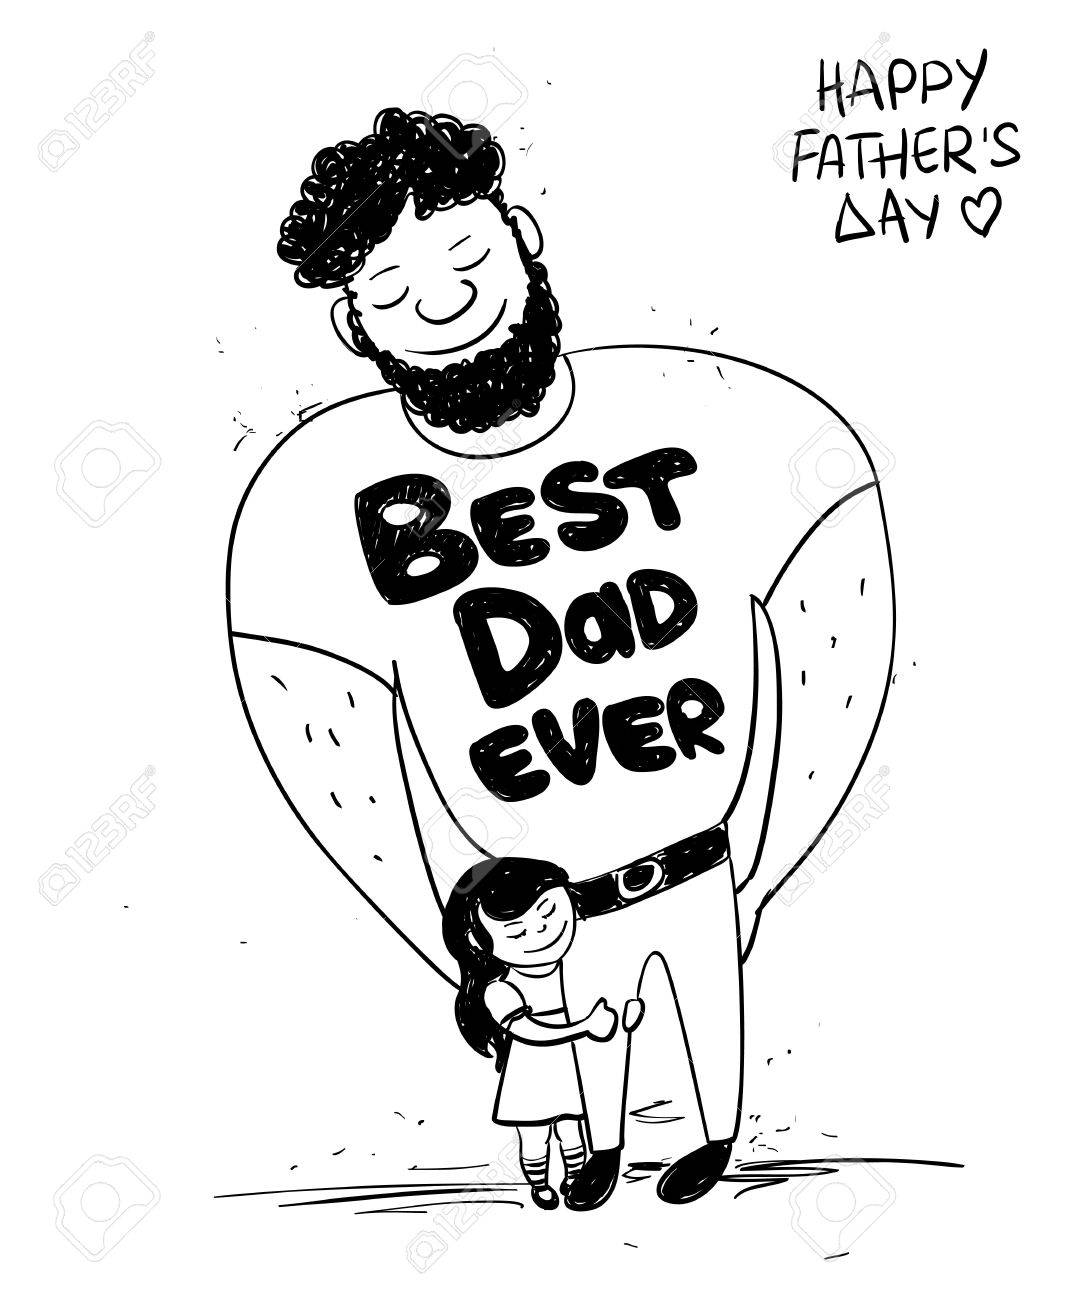 1083x1300 28,927 Father Daughter Stock Illustrations, Cliparts And Royalty